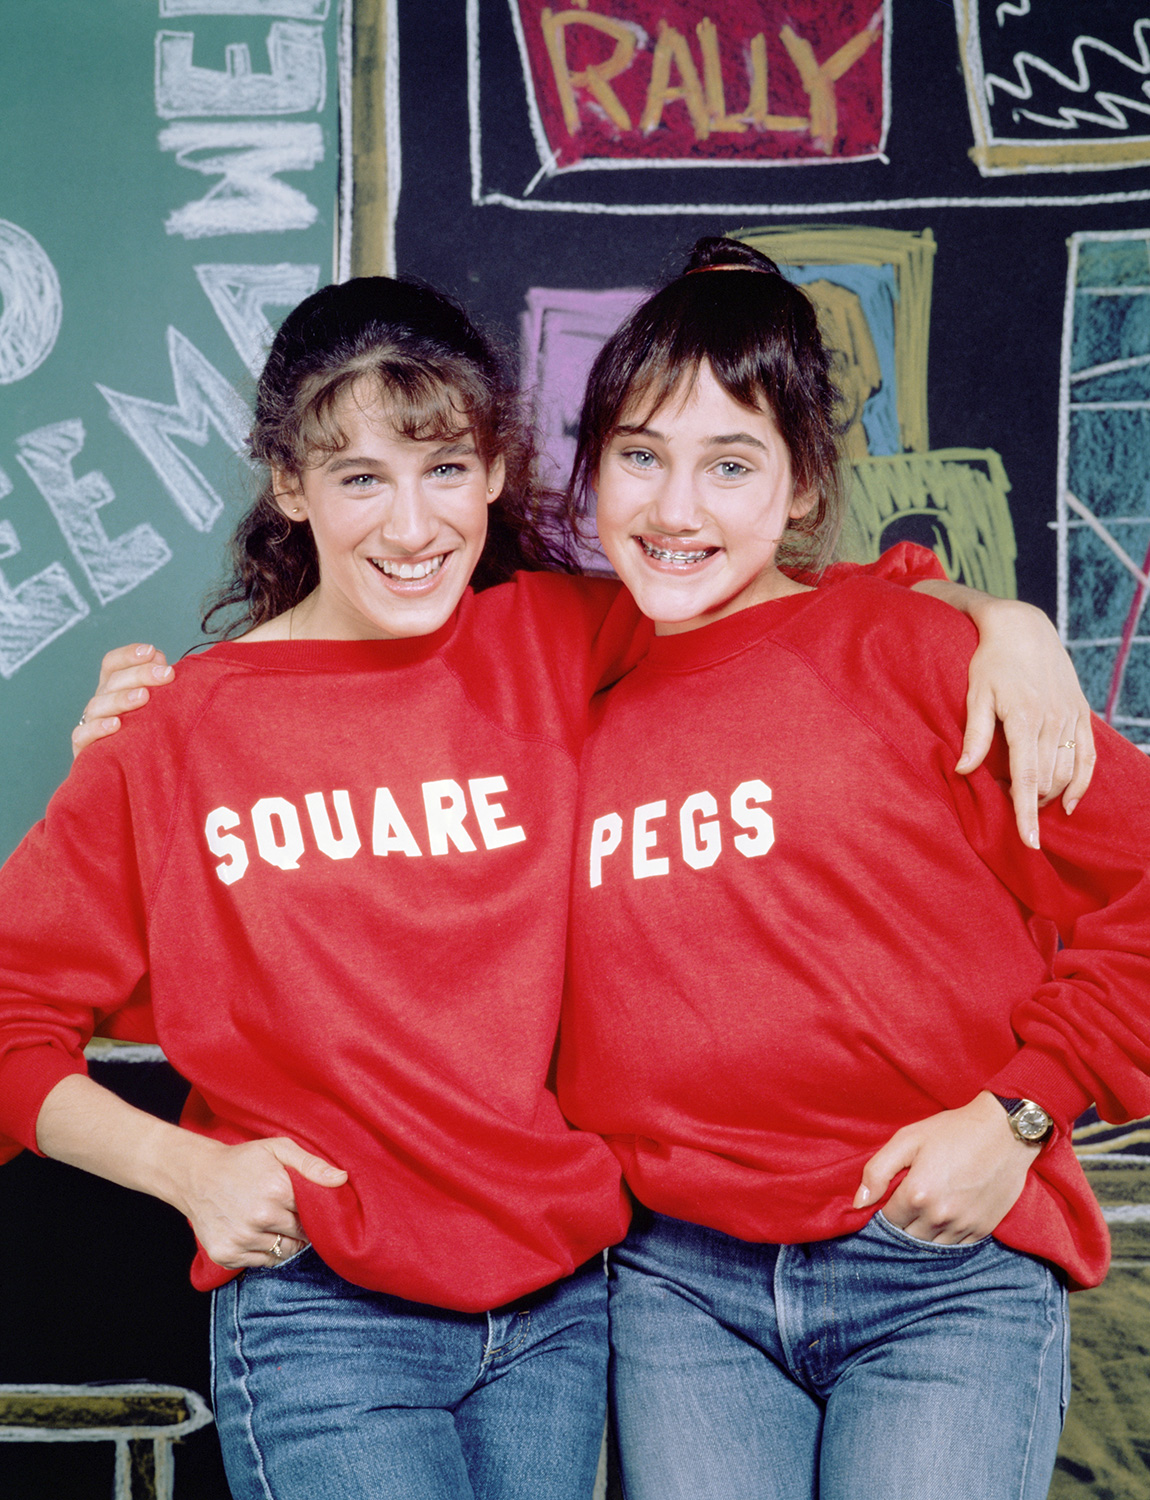 Square Pegs, a CBS situation comedy, featuring (from left) Sarah Jessica Parker as Patty Greene and Amy Linker as Lauren Hutchinson